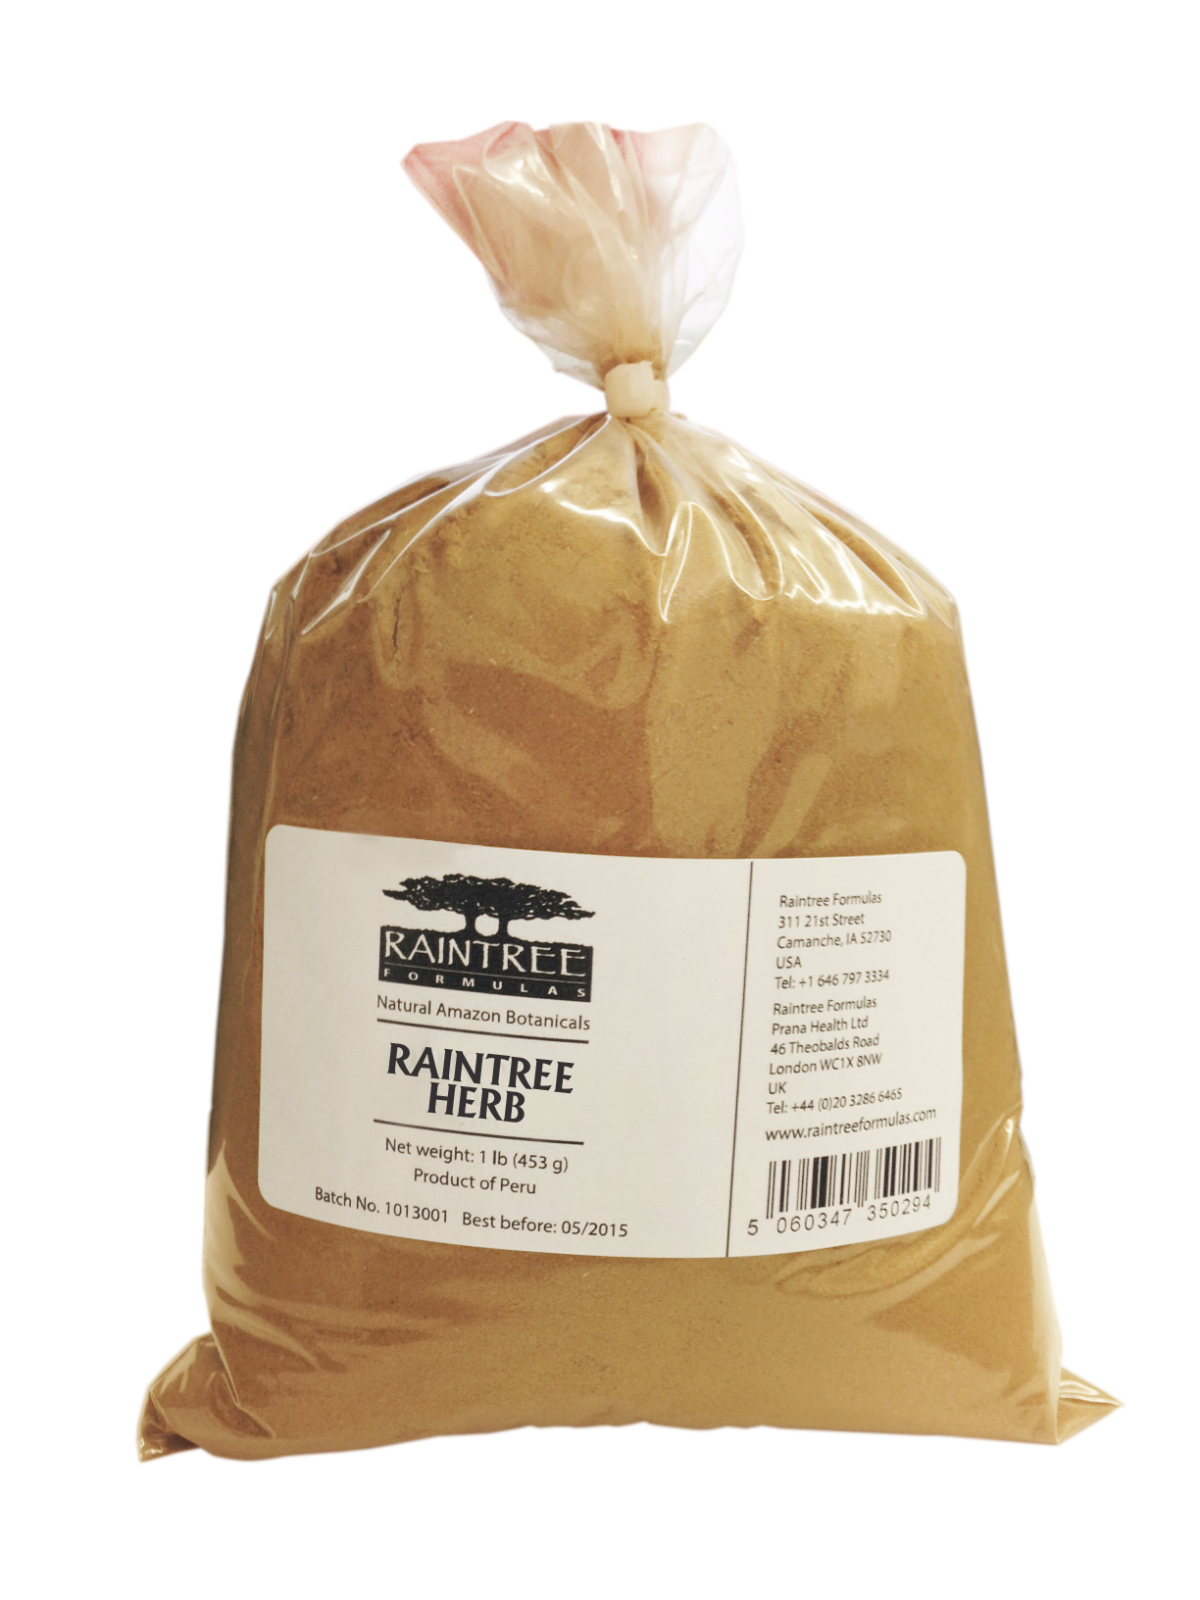 Raintree Chá de Bugre Powder 1lb